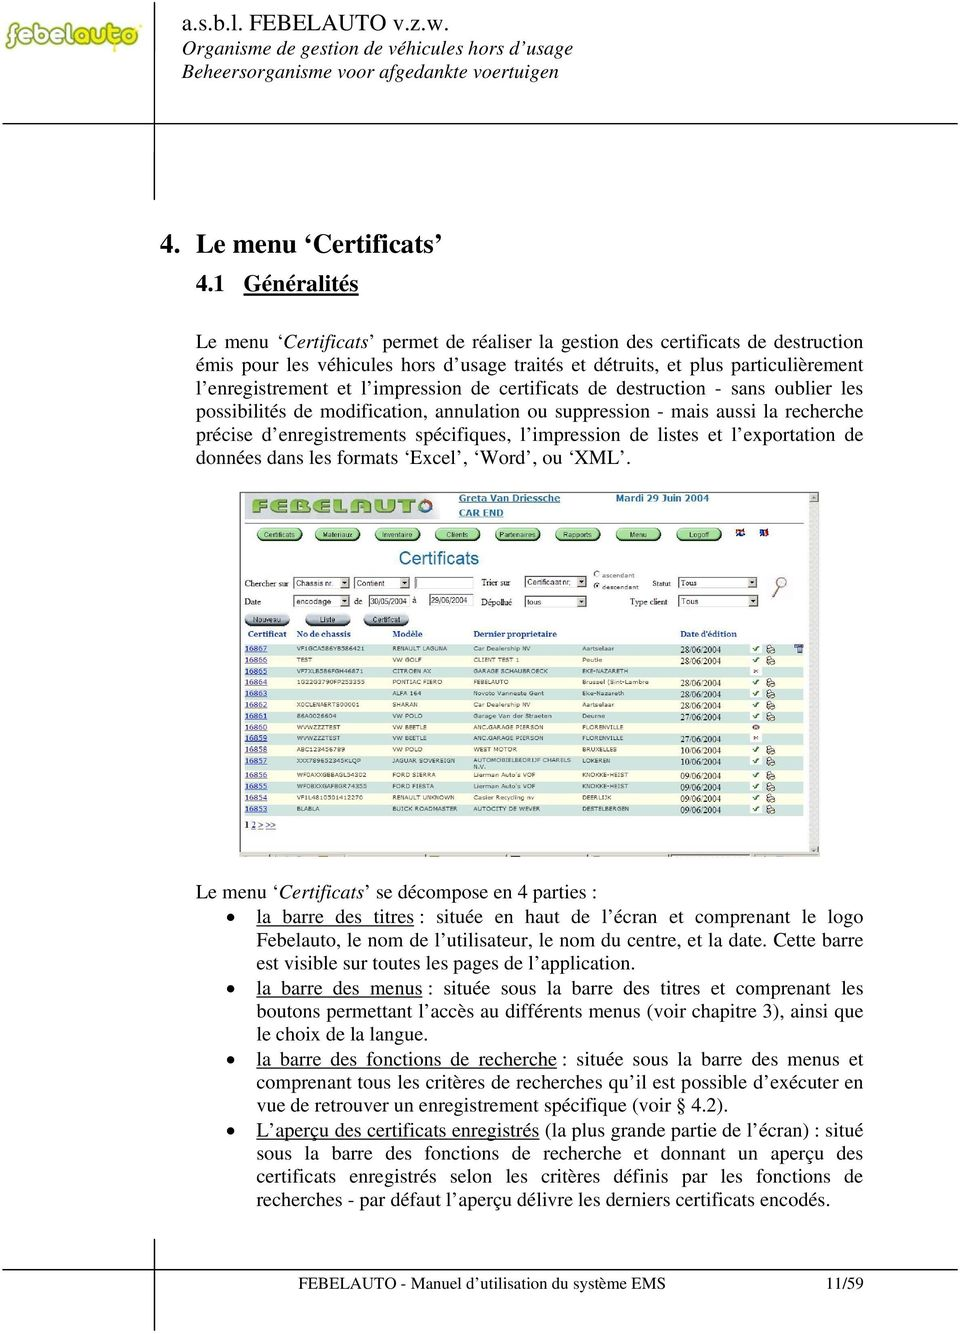 impression de certificats de destruction - sans oublier les possibilités de modification, annulation ou suppression - mais aussi la recherche précise d enregistrements spécifiques, l impression de